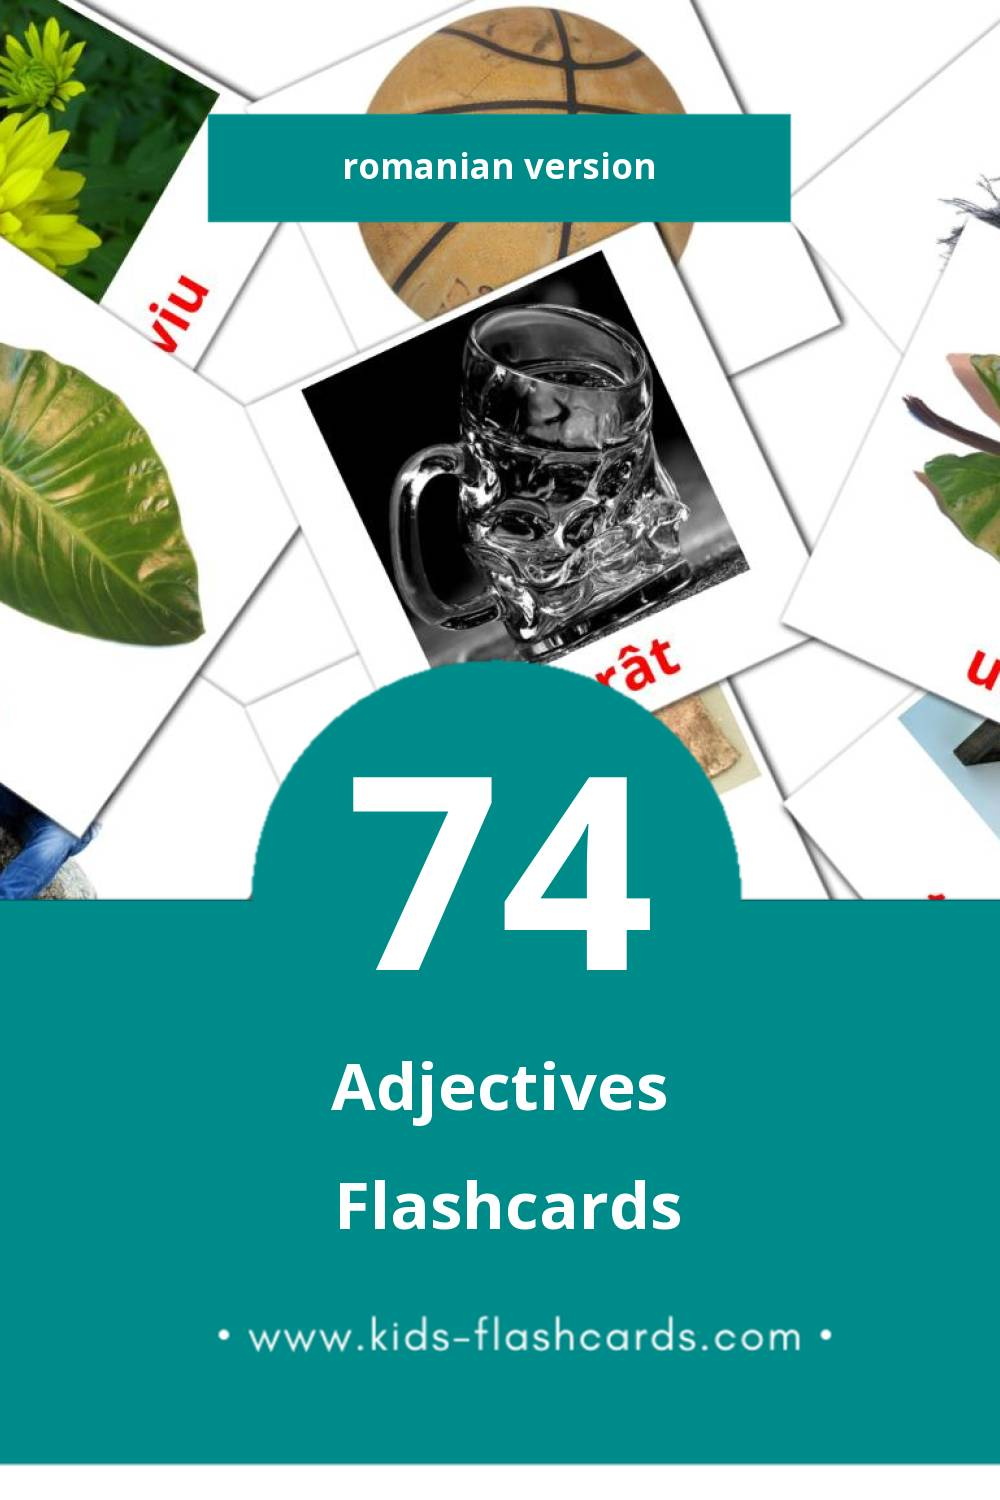 Visual Adjective  Flashcards for Toddlers (74 cards in Romanian)